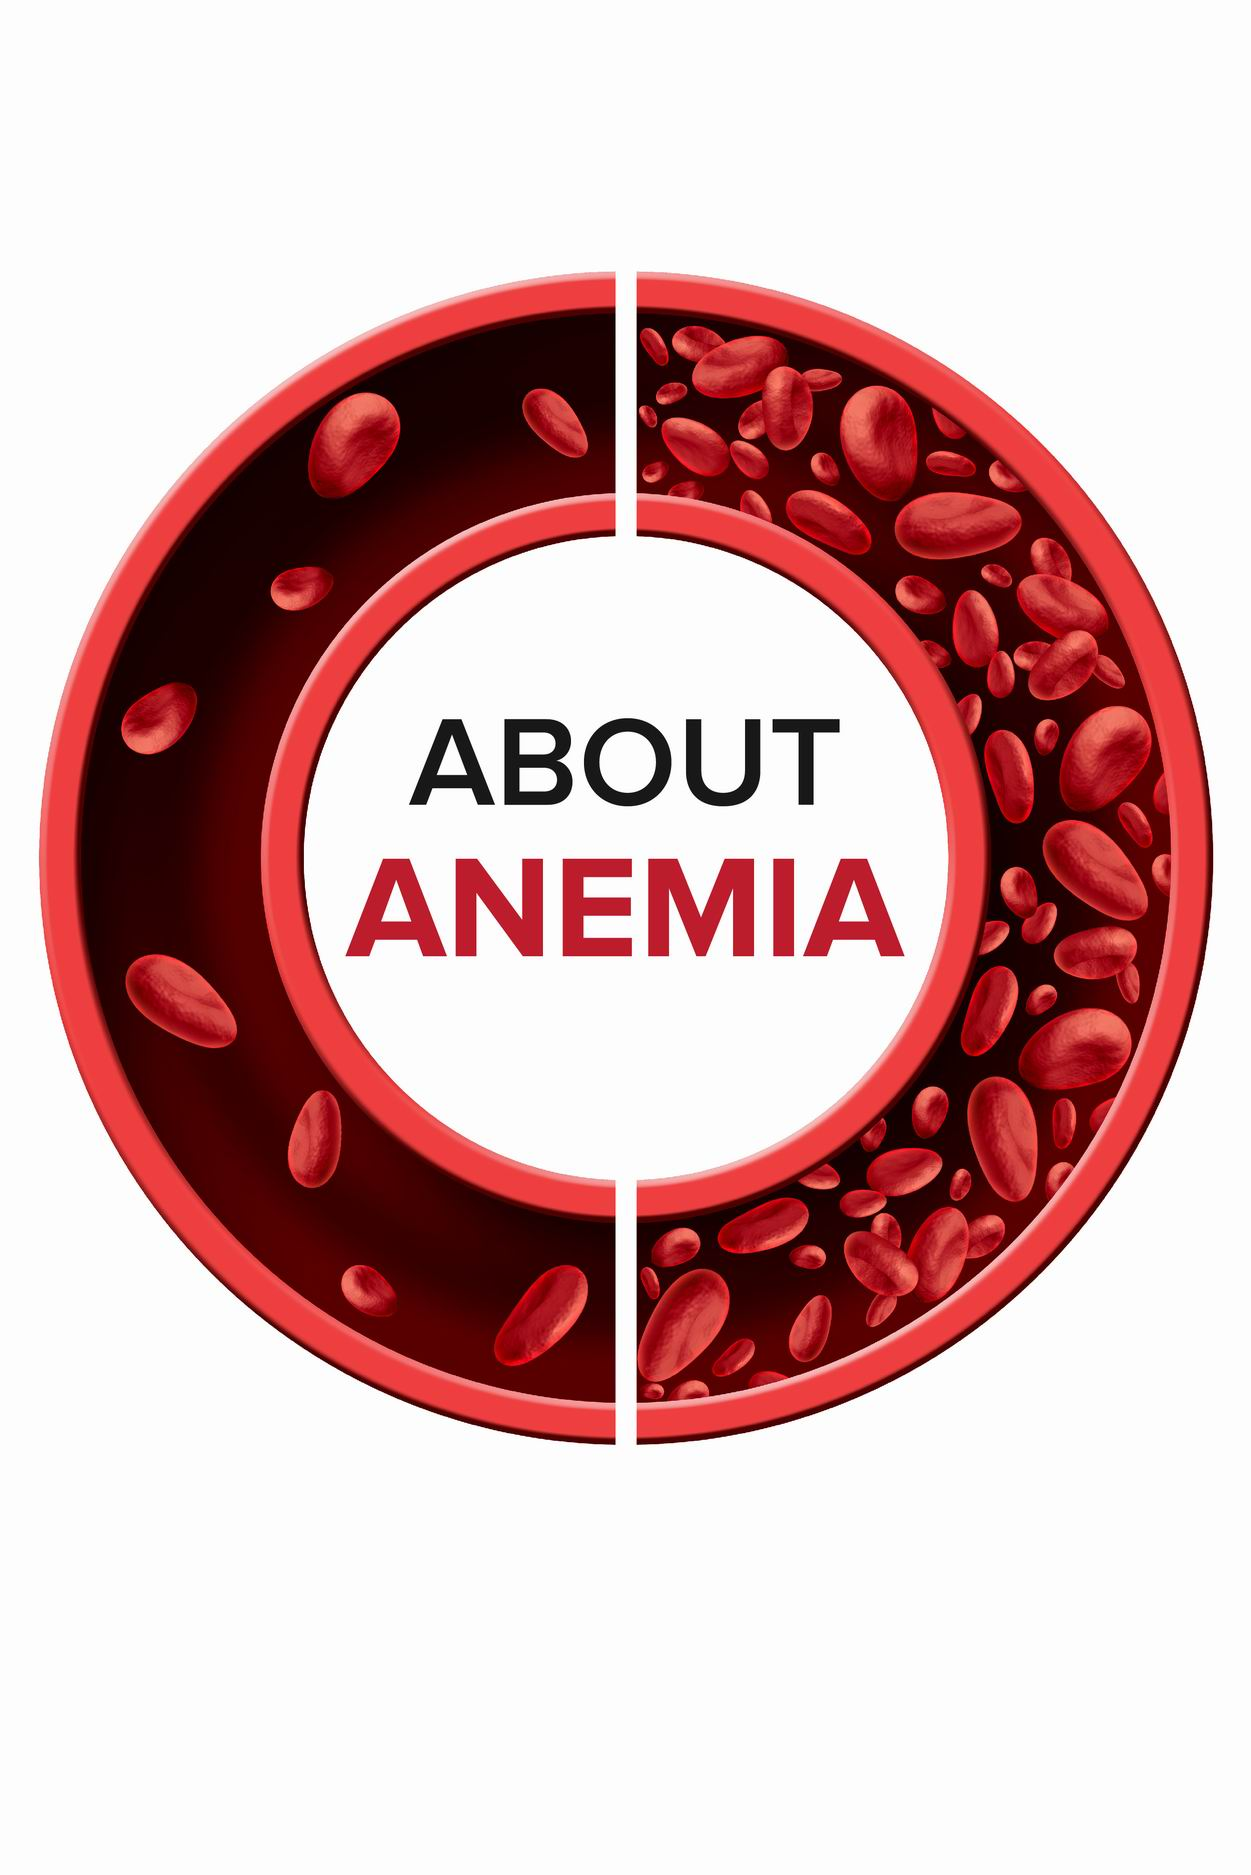 About Anemia